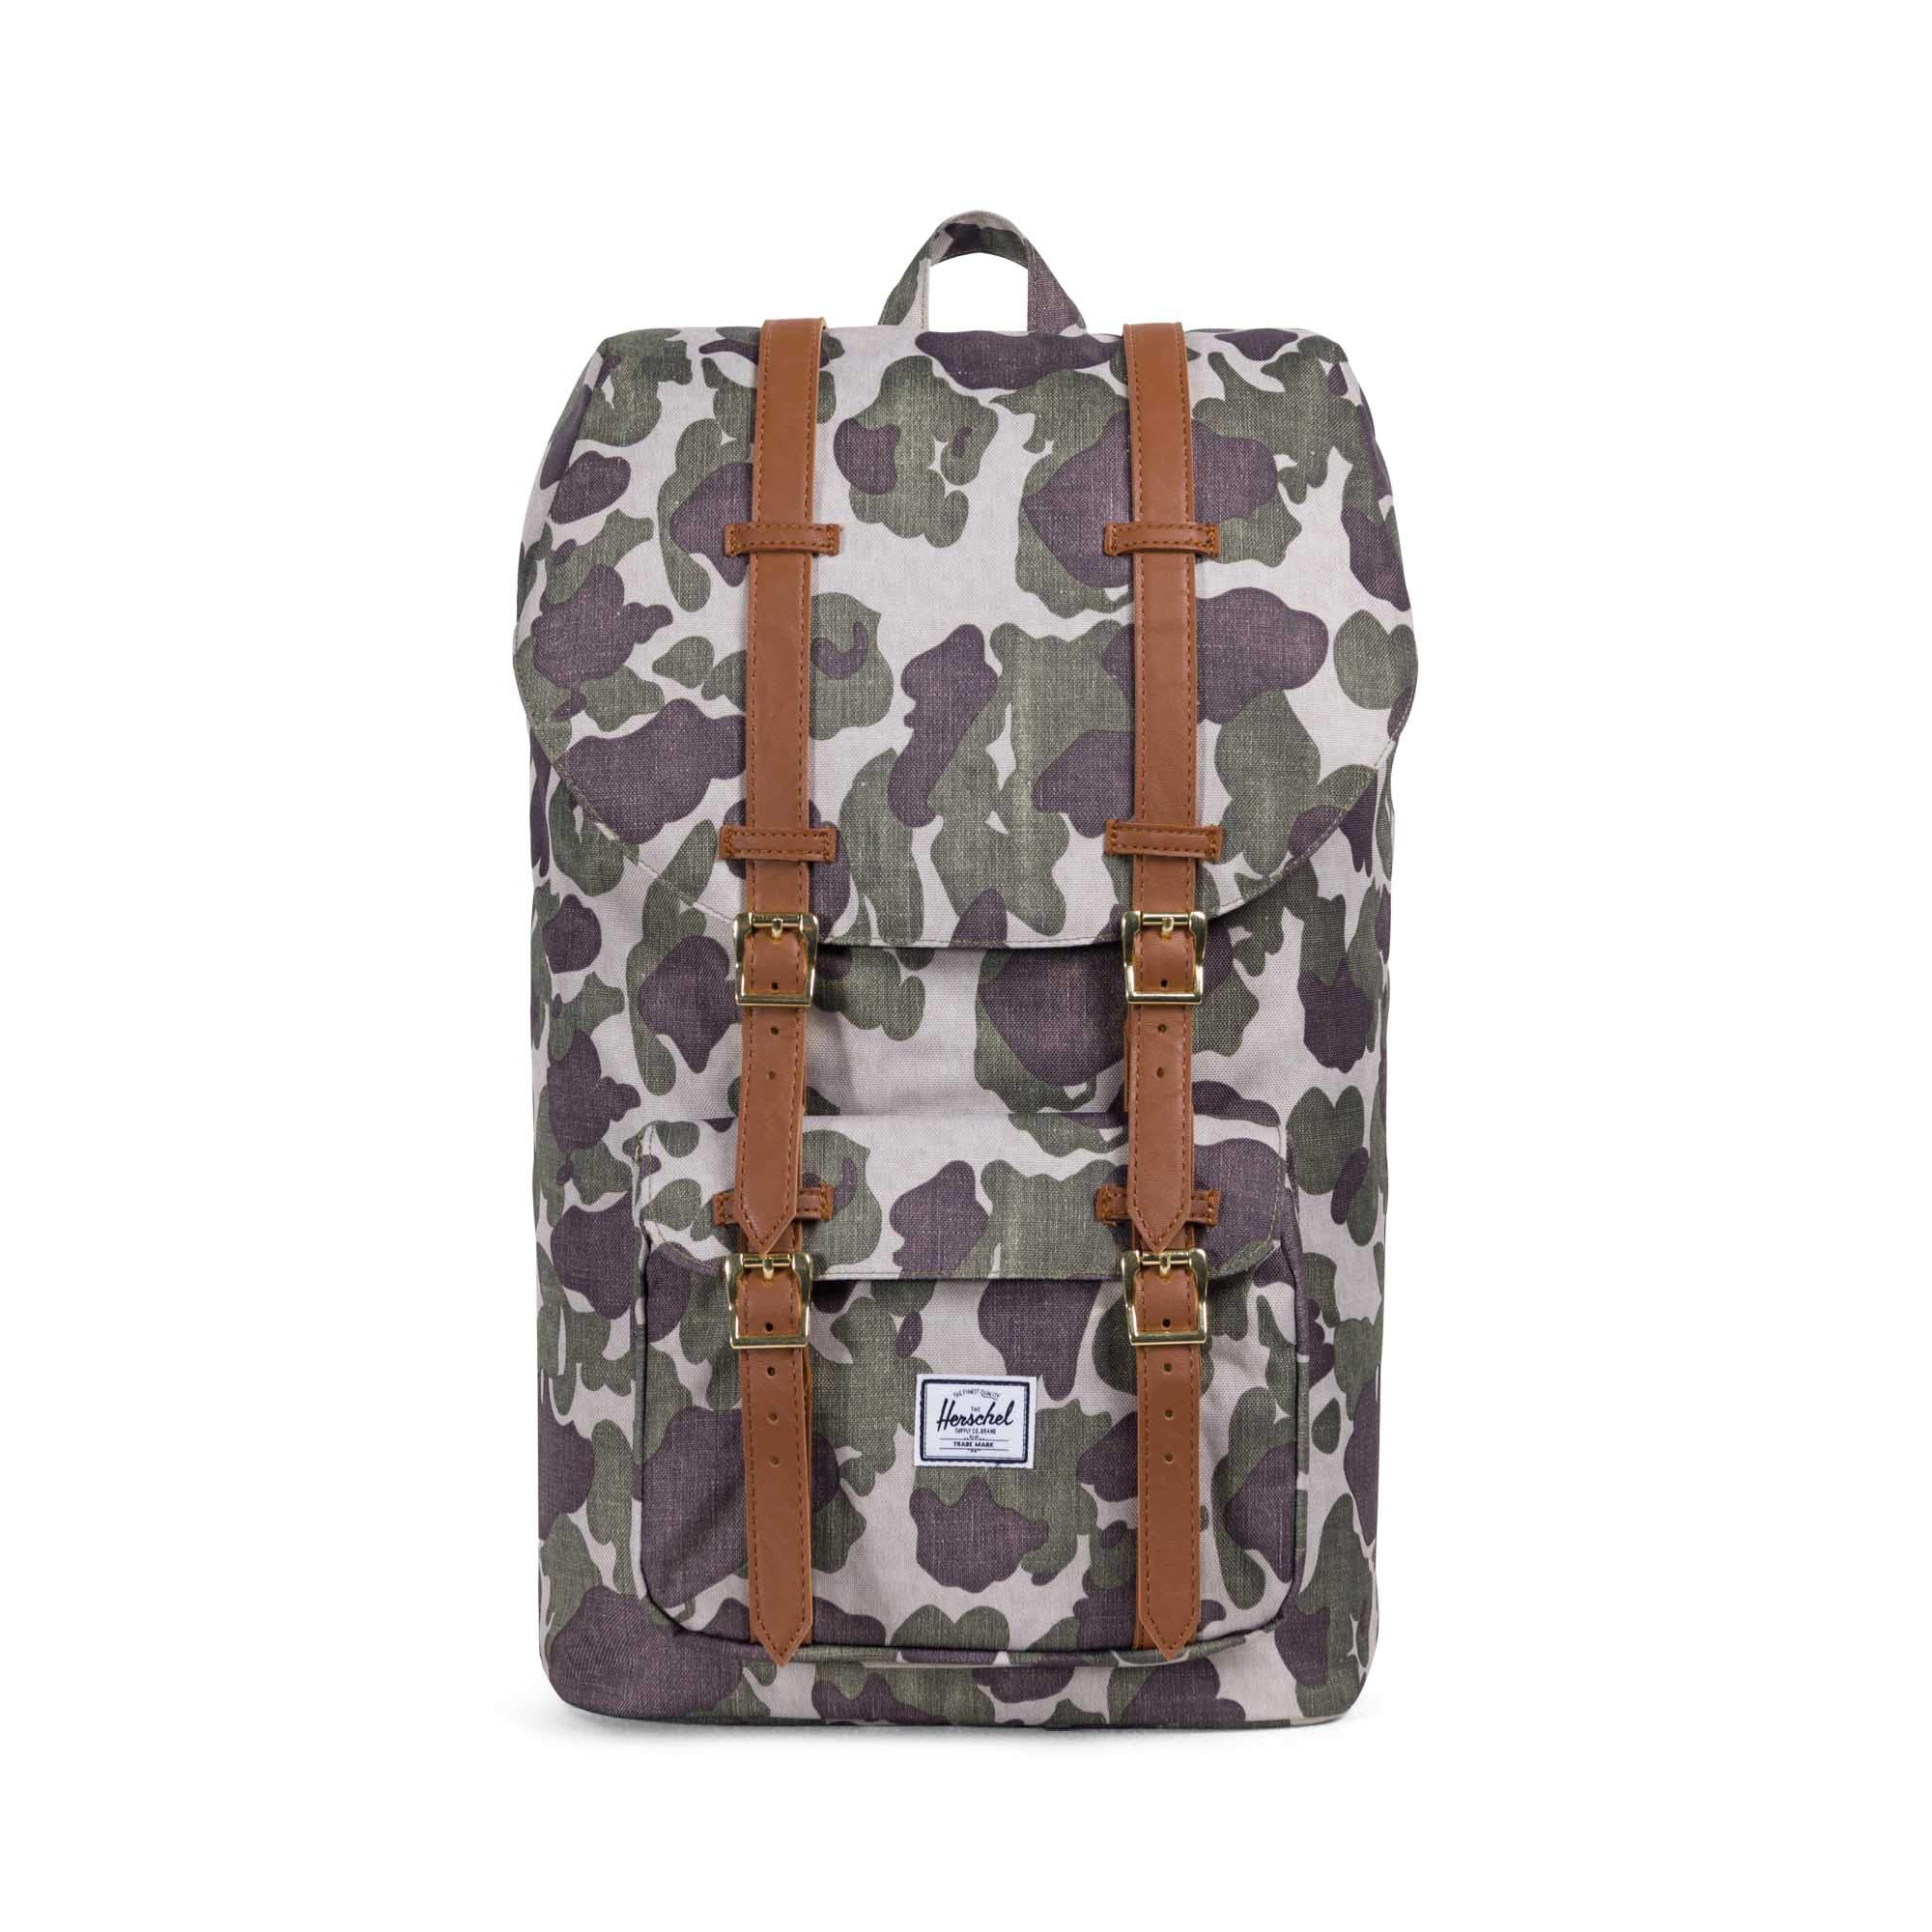 "Herschel Little America Backpack with 15"" Laptop"